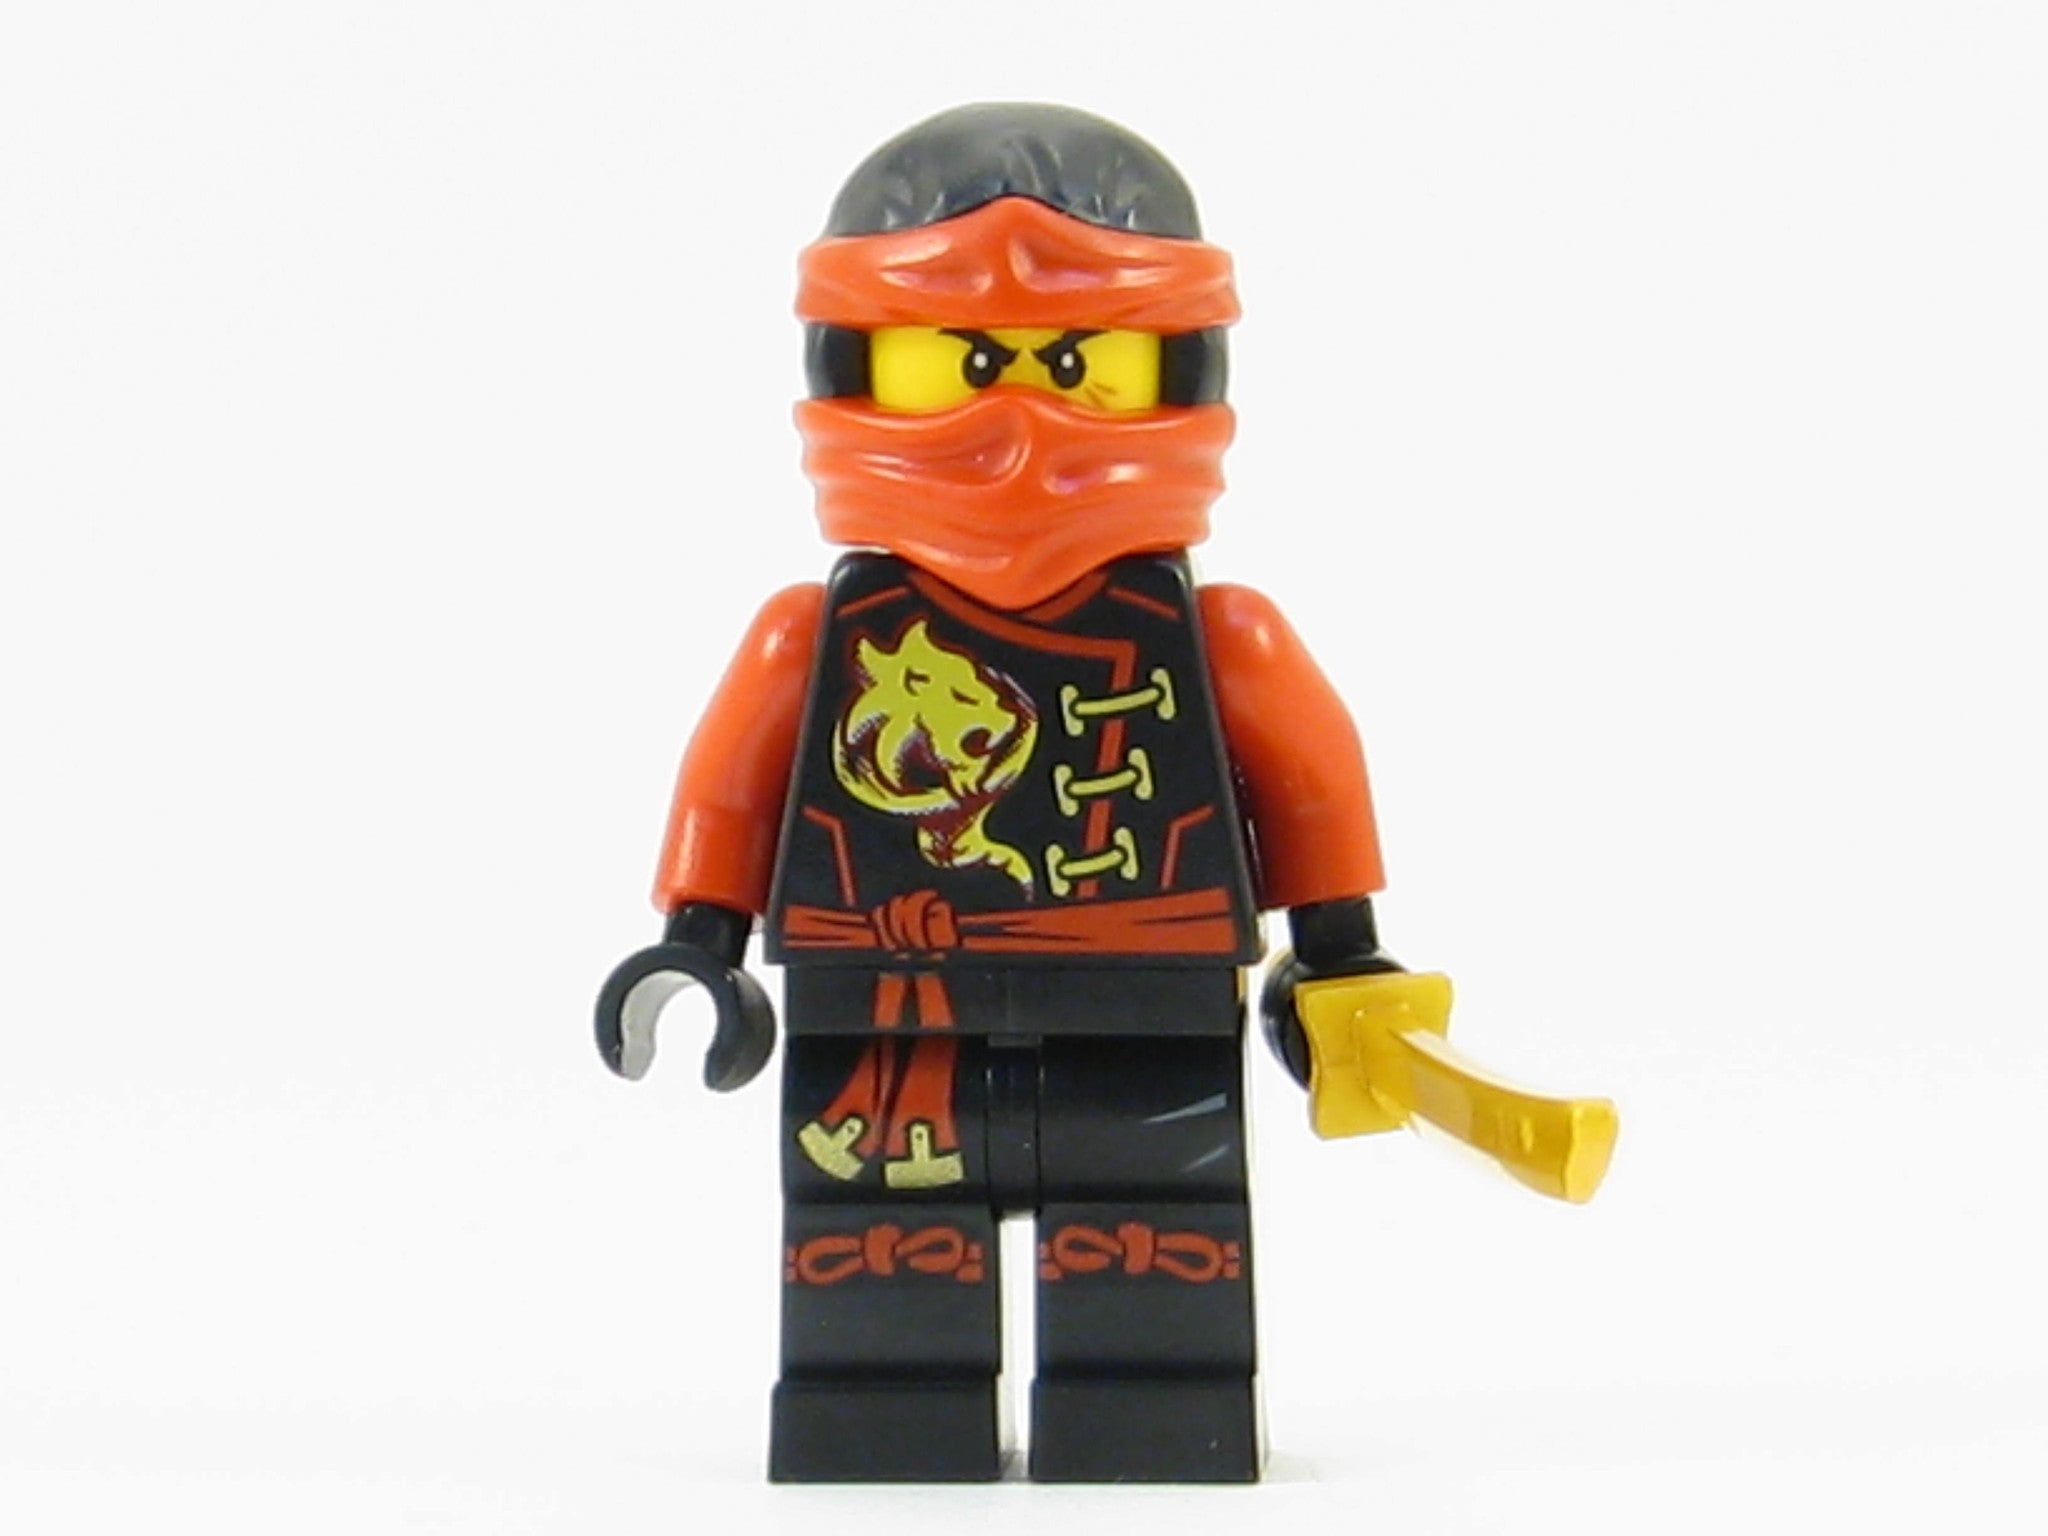 LEGO Ninjago Skybound Kai Red Ninja Minifigure Sky Pirate